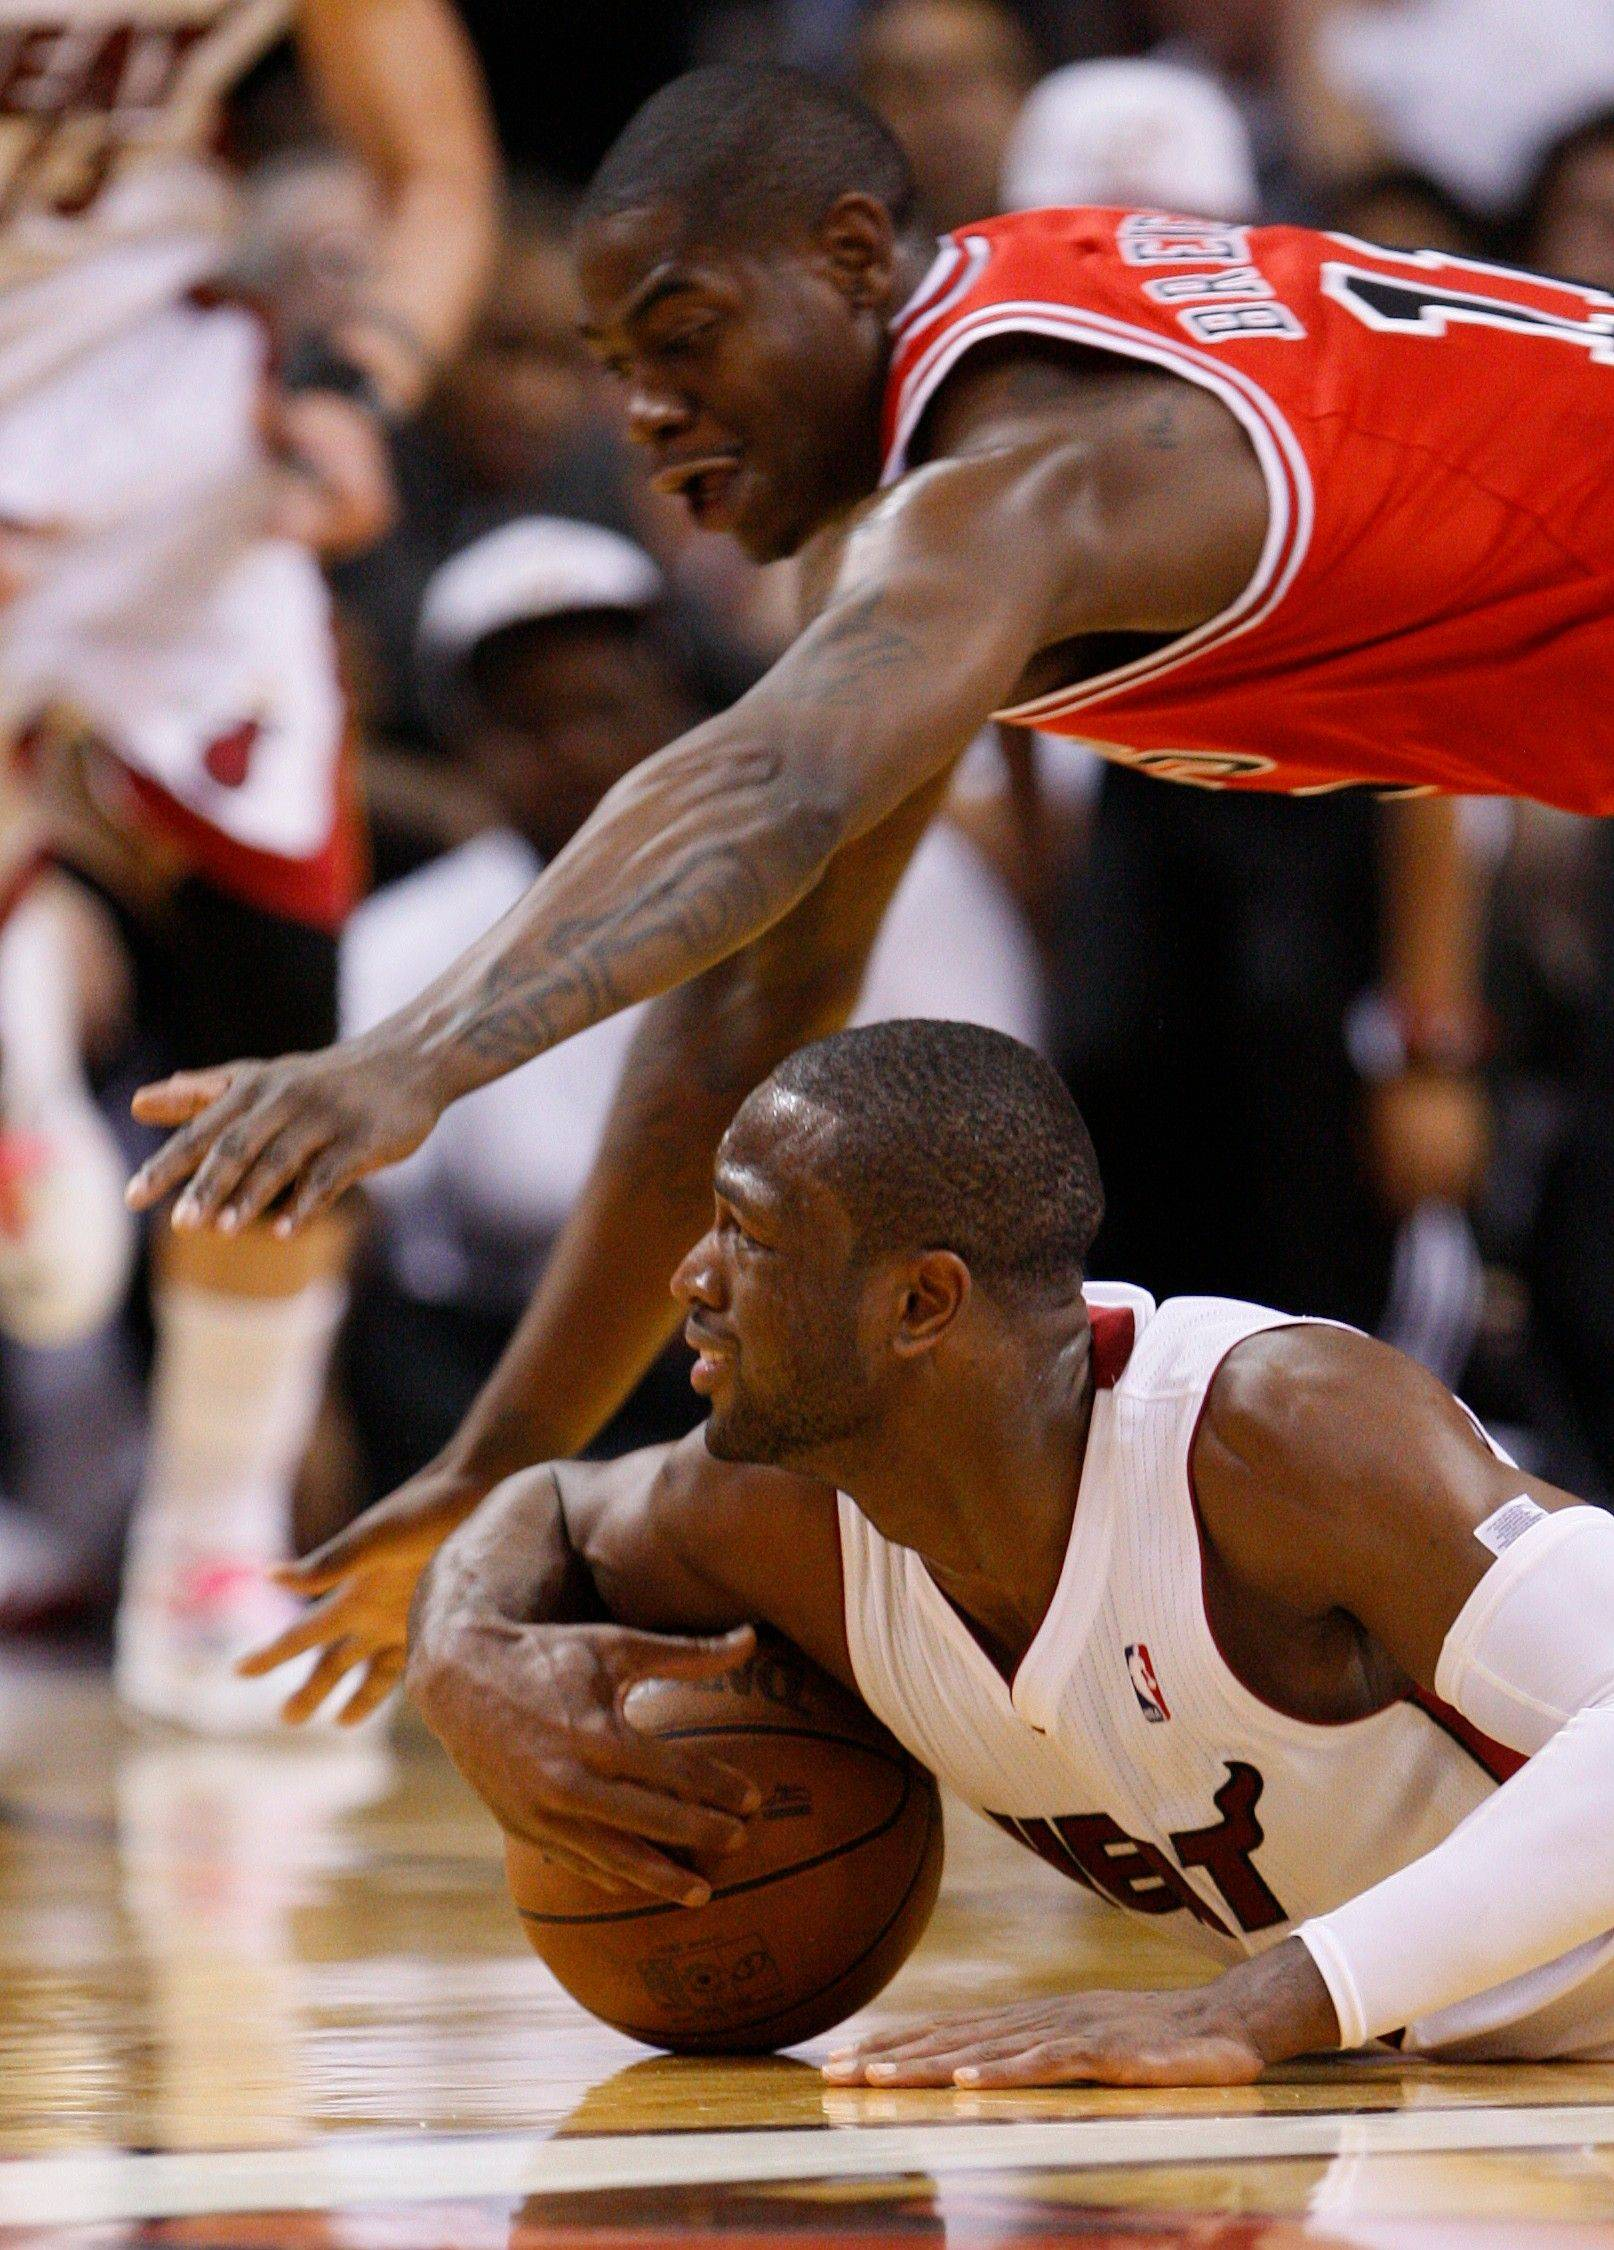 Miami Heat's Dwyane Wade, below, battles for a loose ball with Chicago Bulls' Ronnie Brewer during the second half of Game 3 of the NBA Eastern Conference finals basketball series in Miami, Sunday, May 22, 2011.